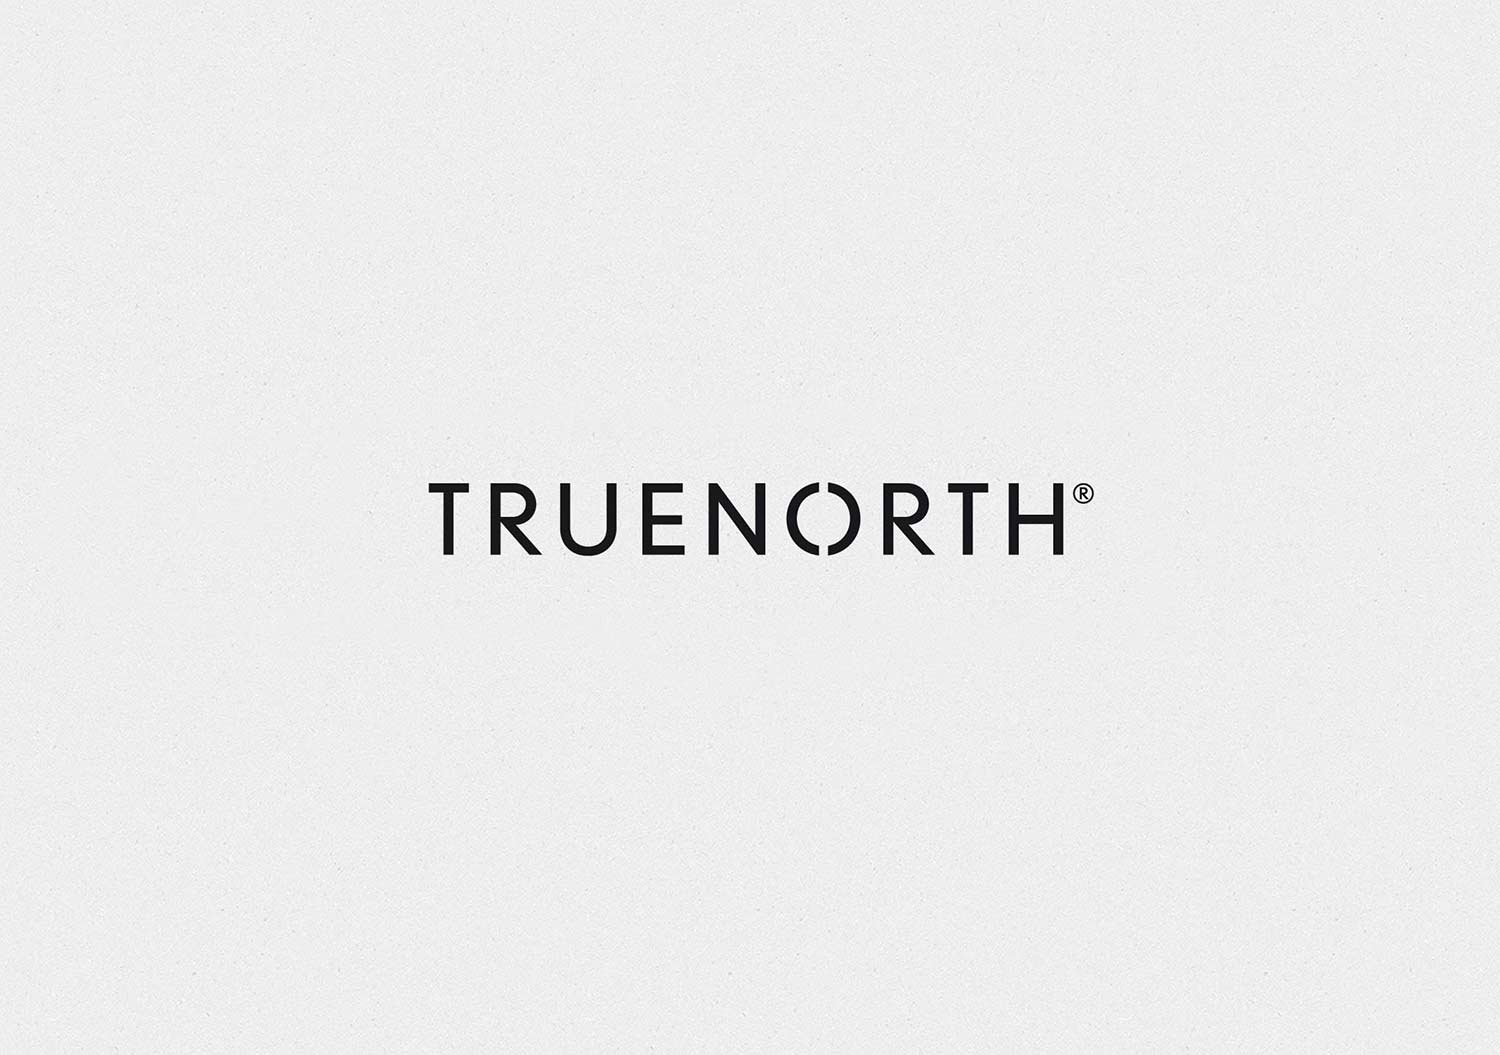 Truenorth / Visual identity